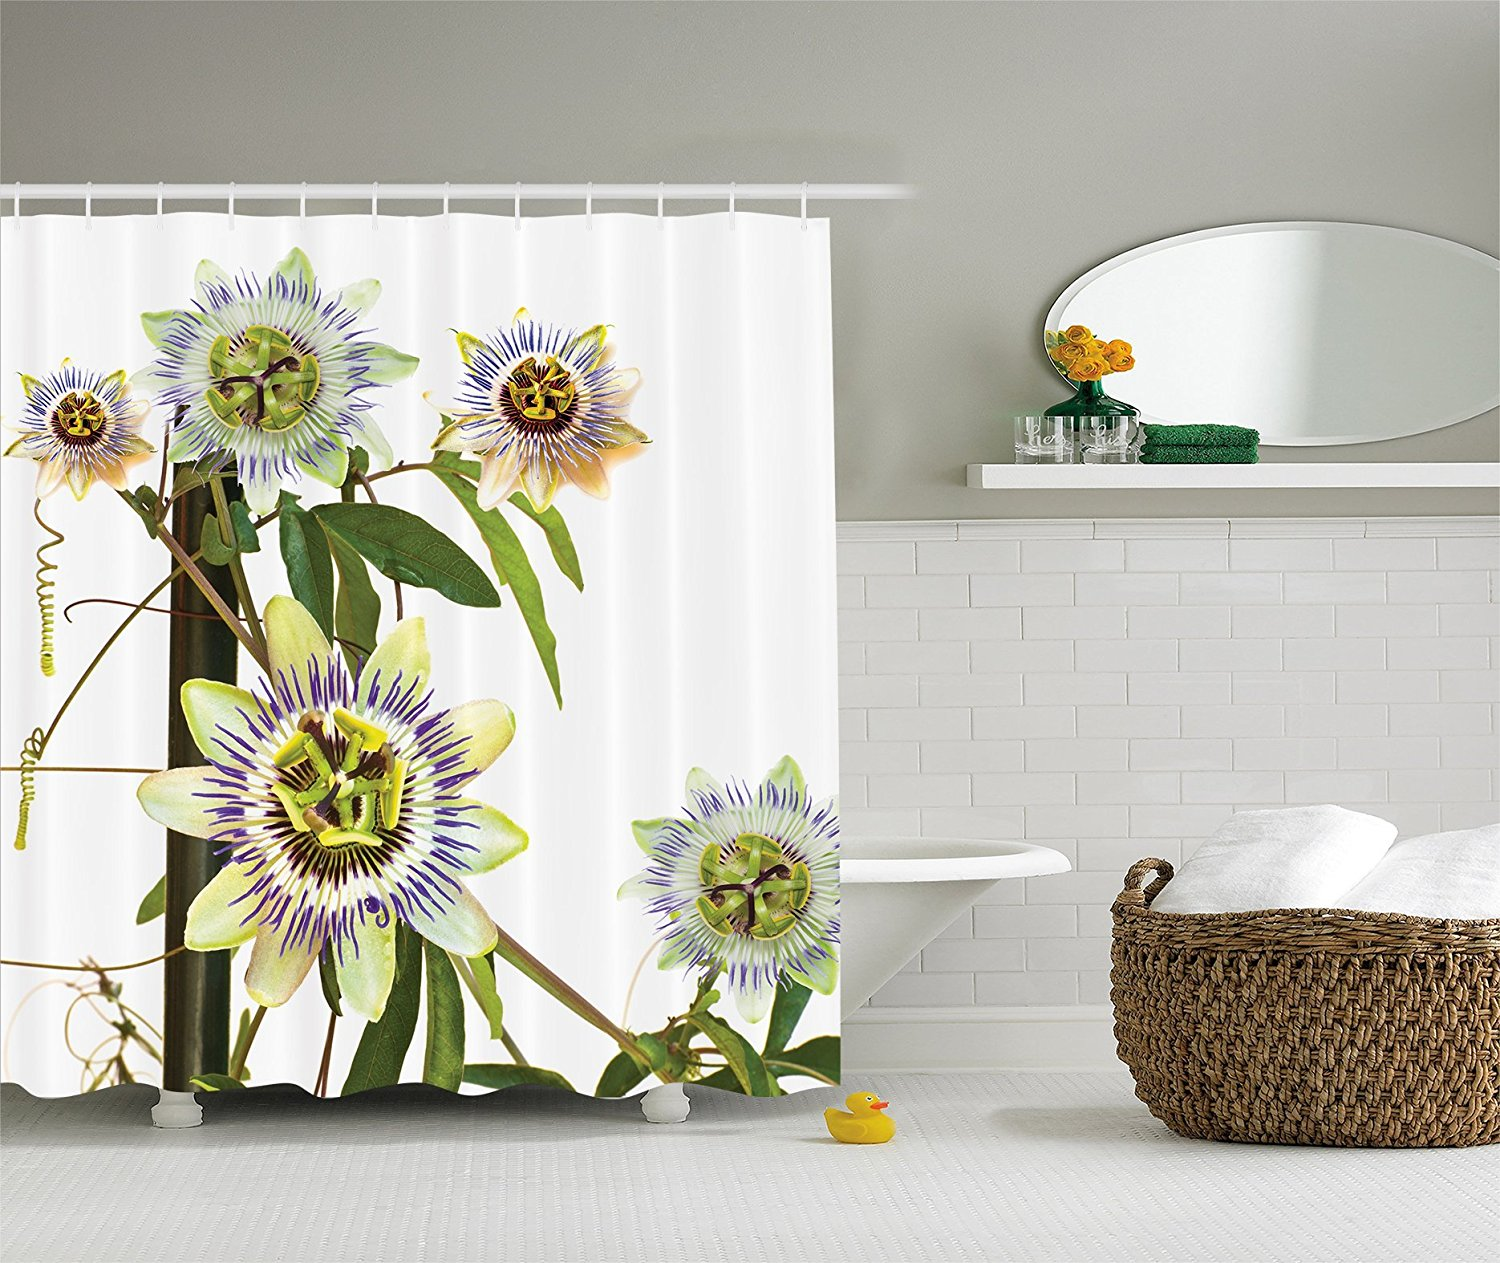 Us 10 98 6 Off Roses Bouquet Romance Holiday Love Anniversary Luxury Ornament Decorating Picture Polyester Fabric Bathroom Shower Curtain In Shower